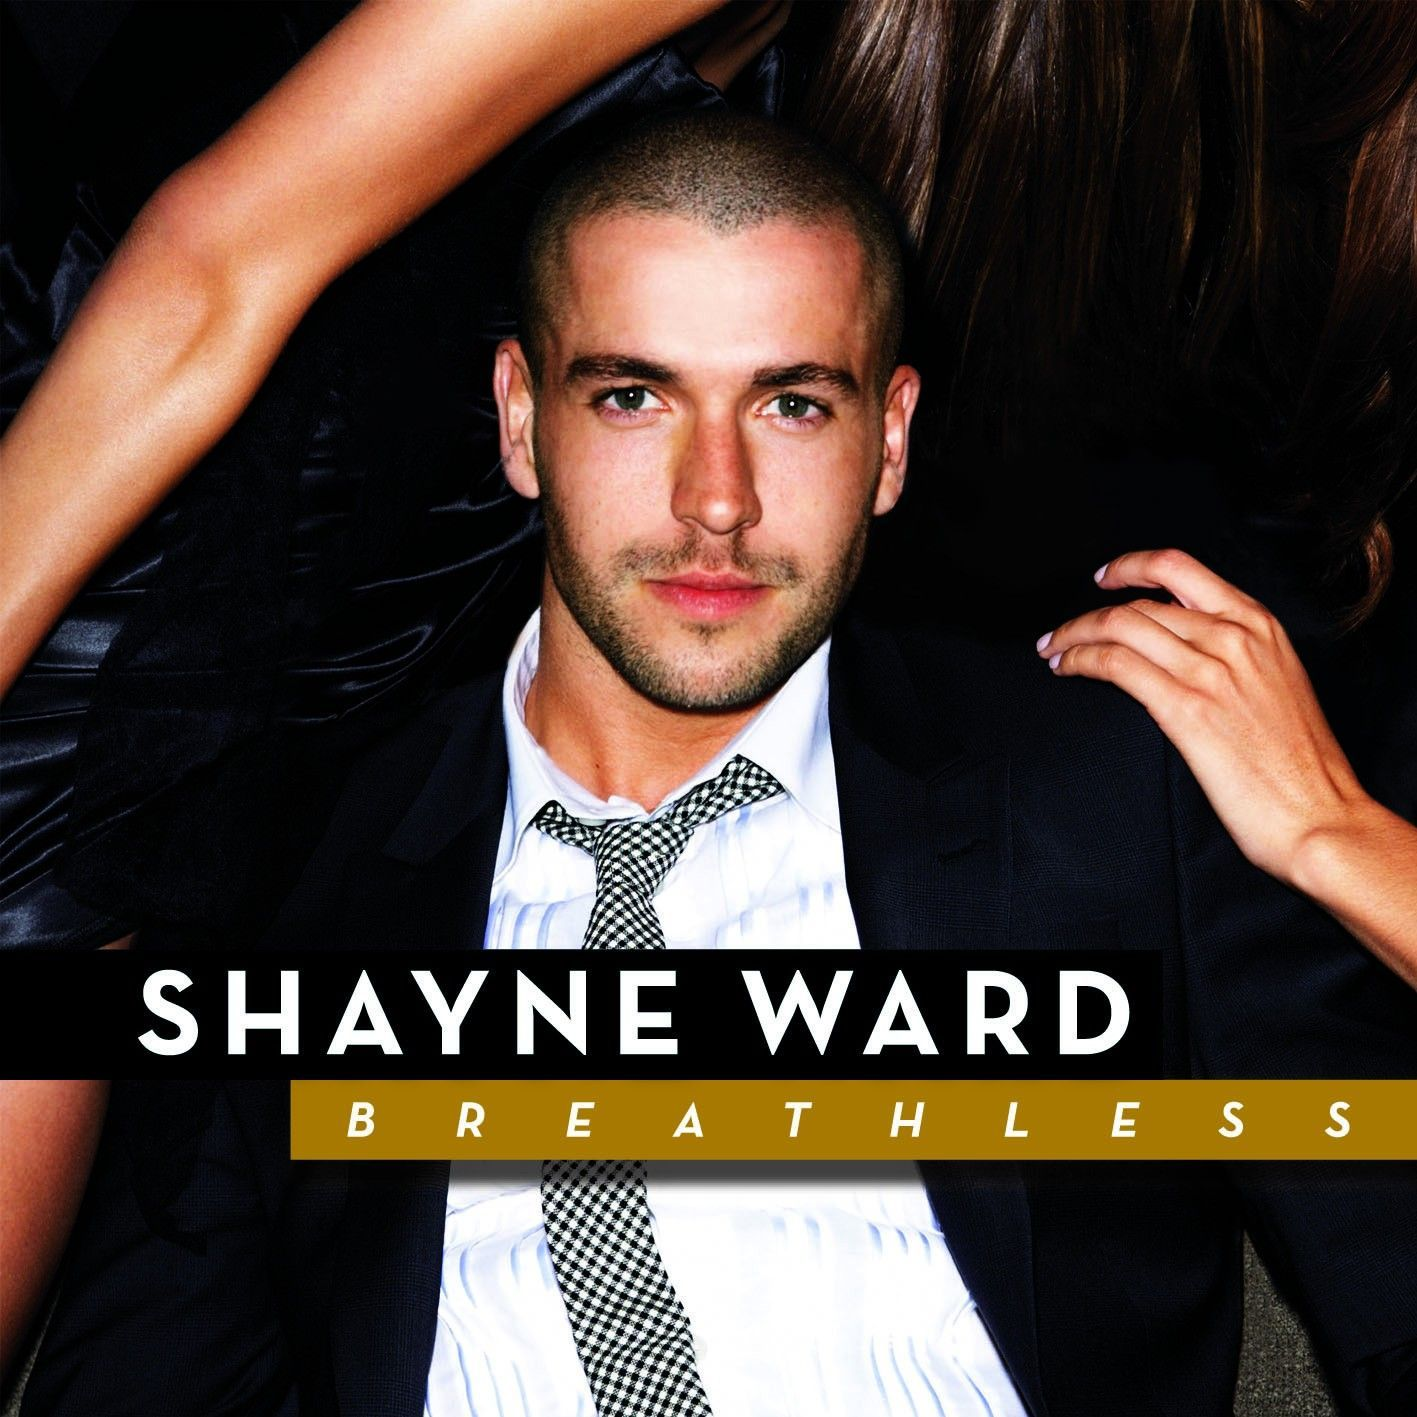 Shayne Ward - Breathless album cover